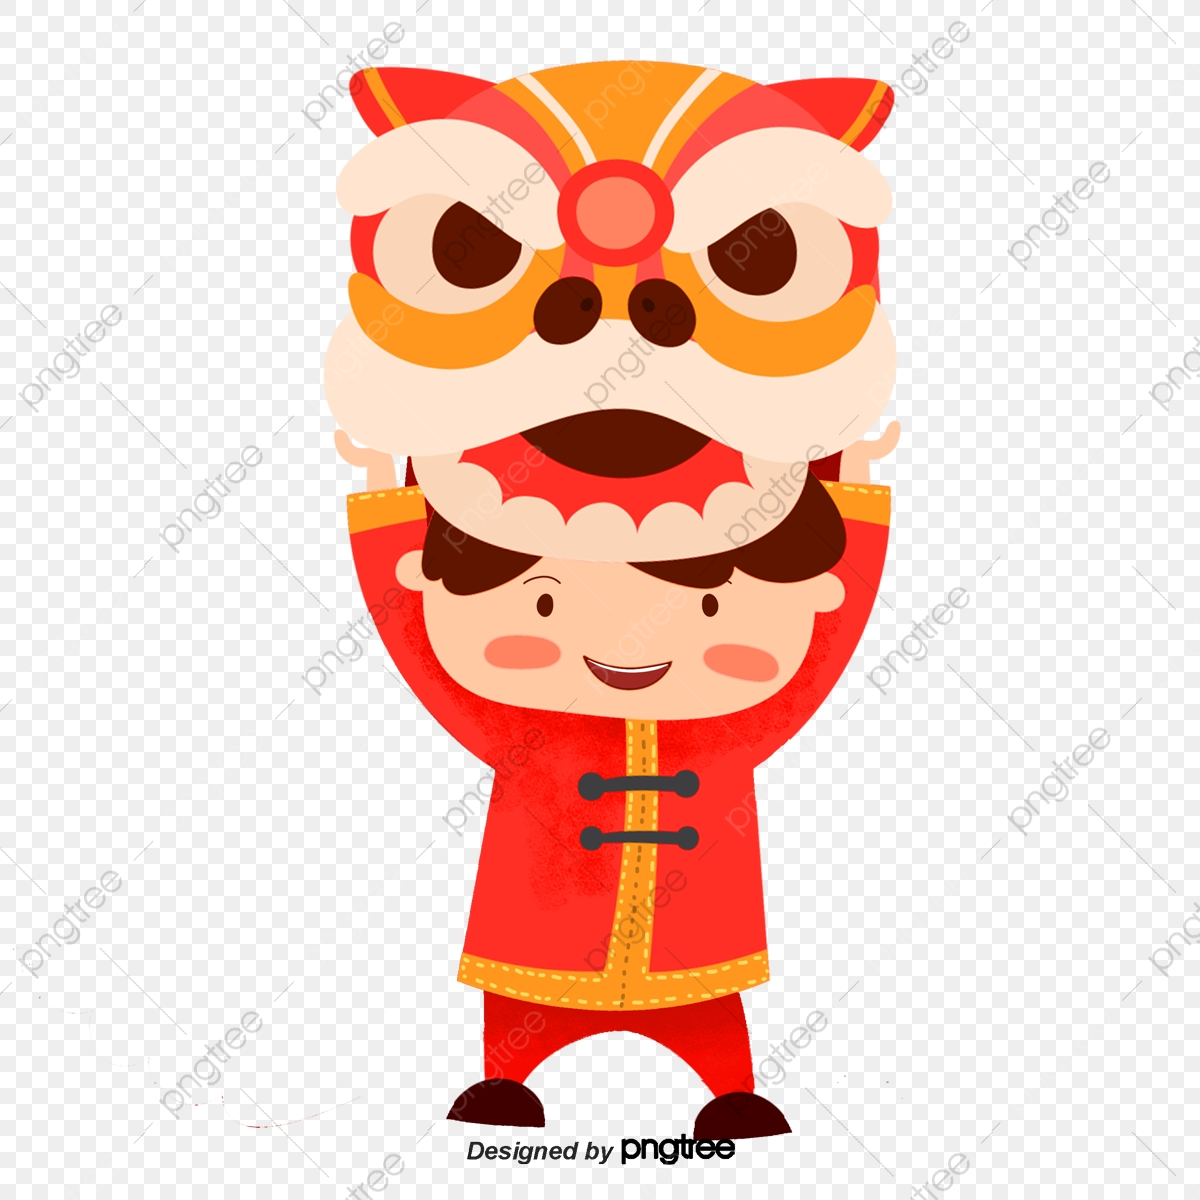 Animated Chinese New Year Clipart   Free Images at Clker.com - vector clip  art online, royalty free & public domain